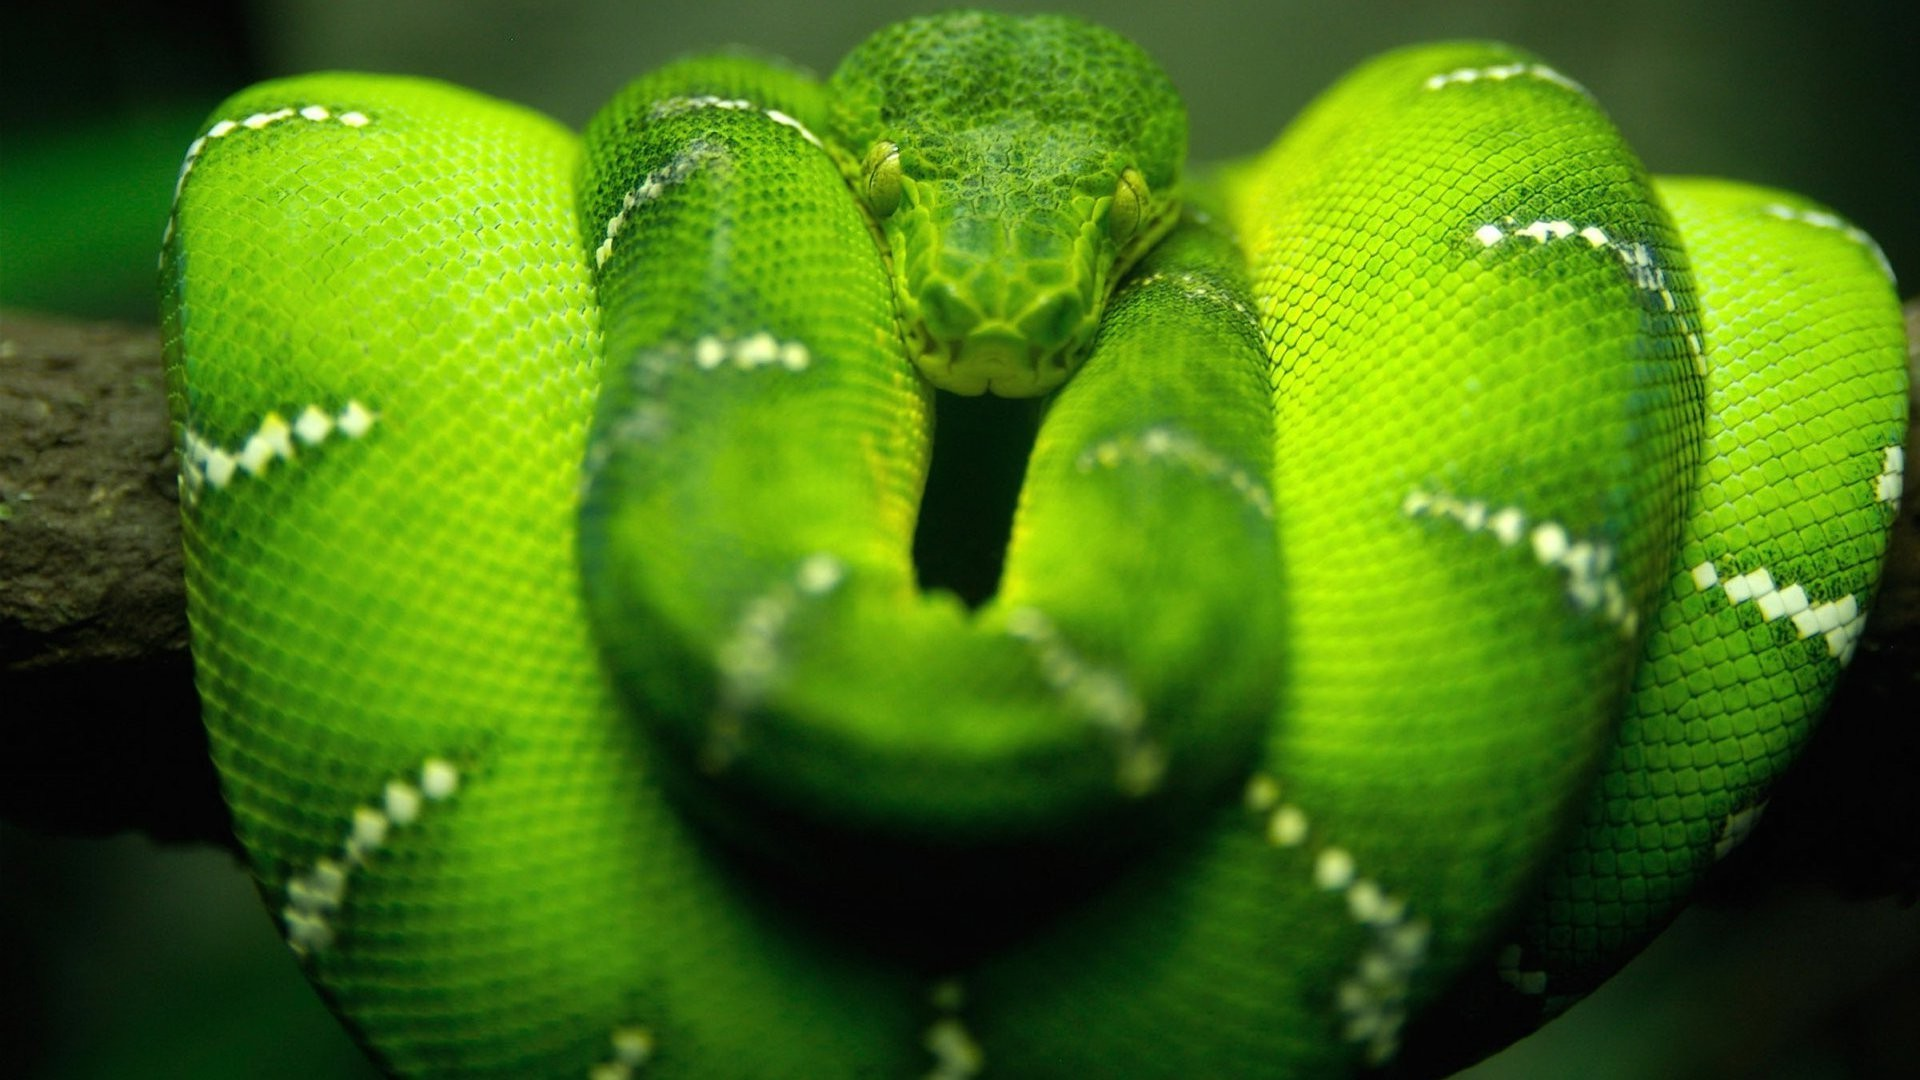 Hd 3d Snake Wallpapers Snake Green Reptile Boa Constrictor Wallpapers Hd